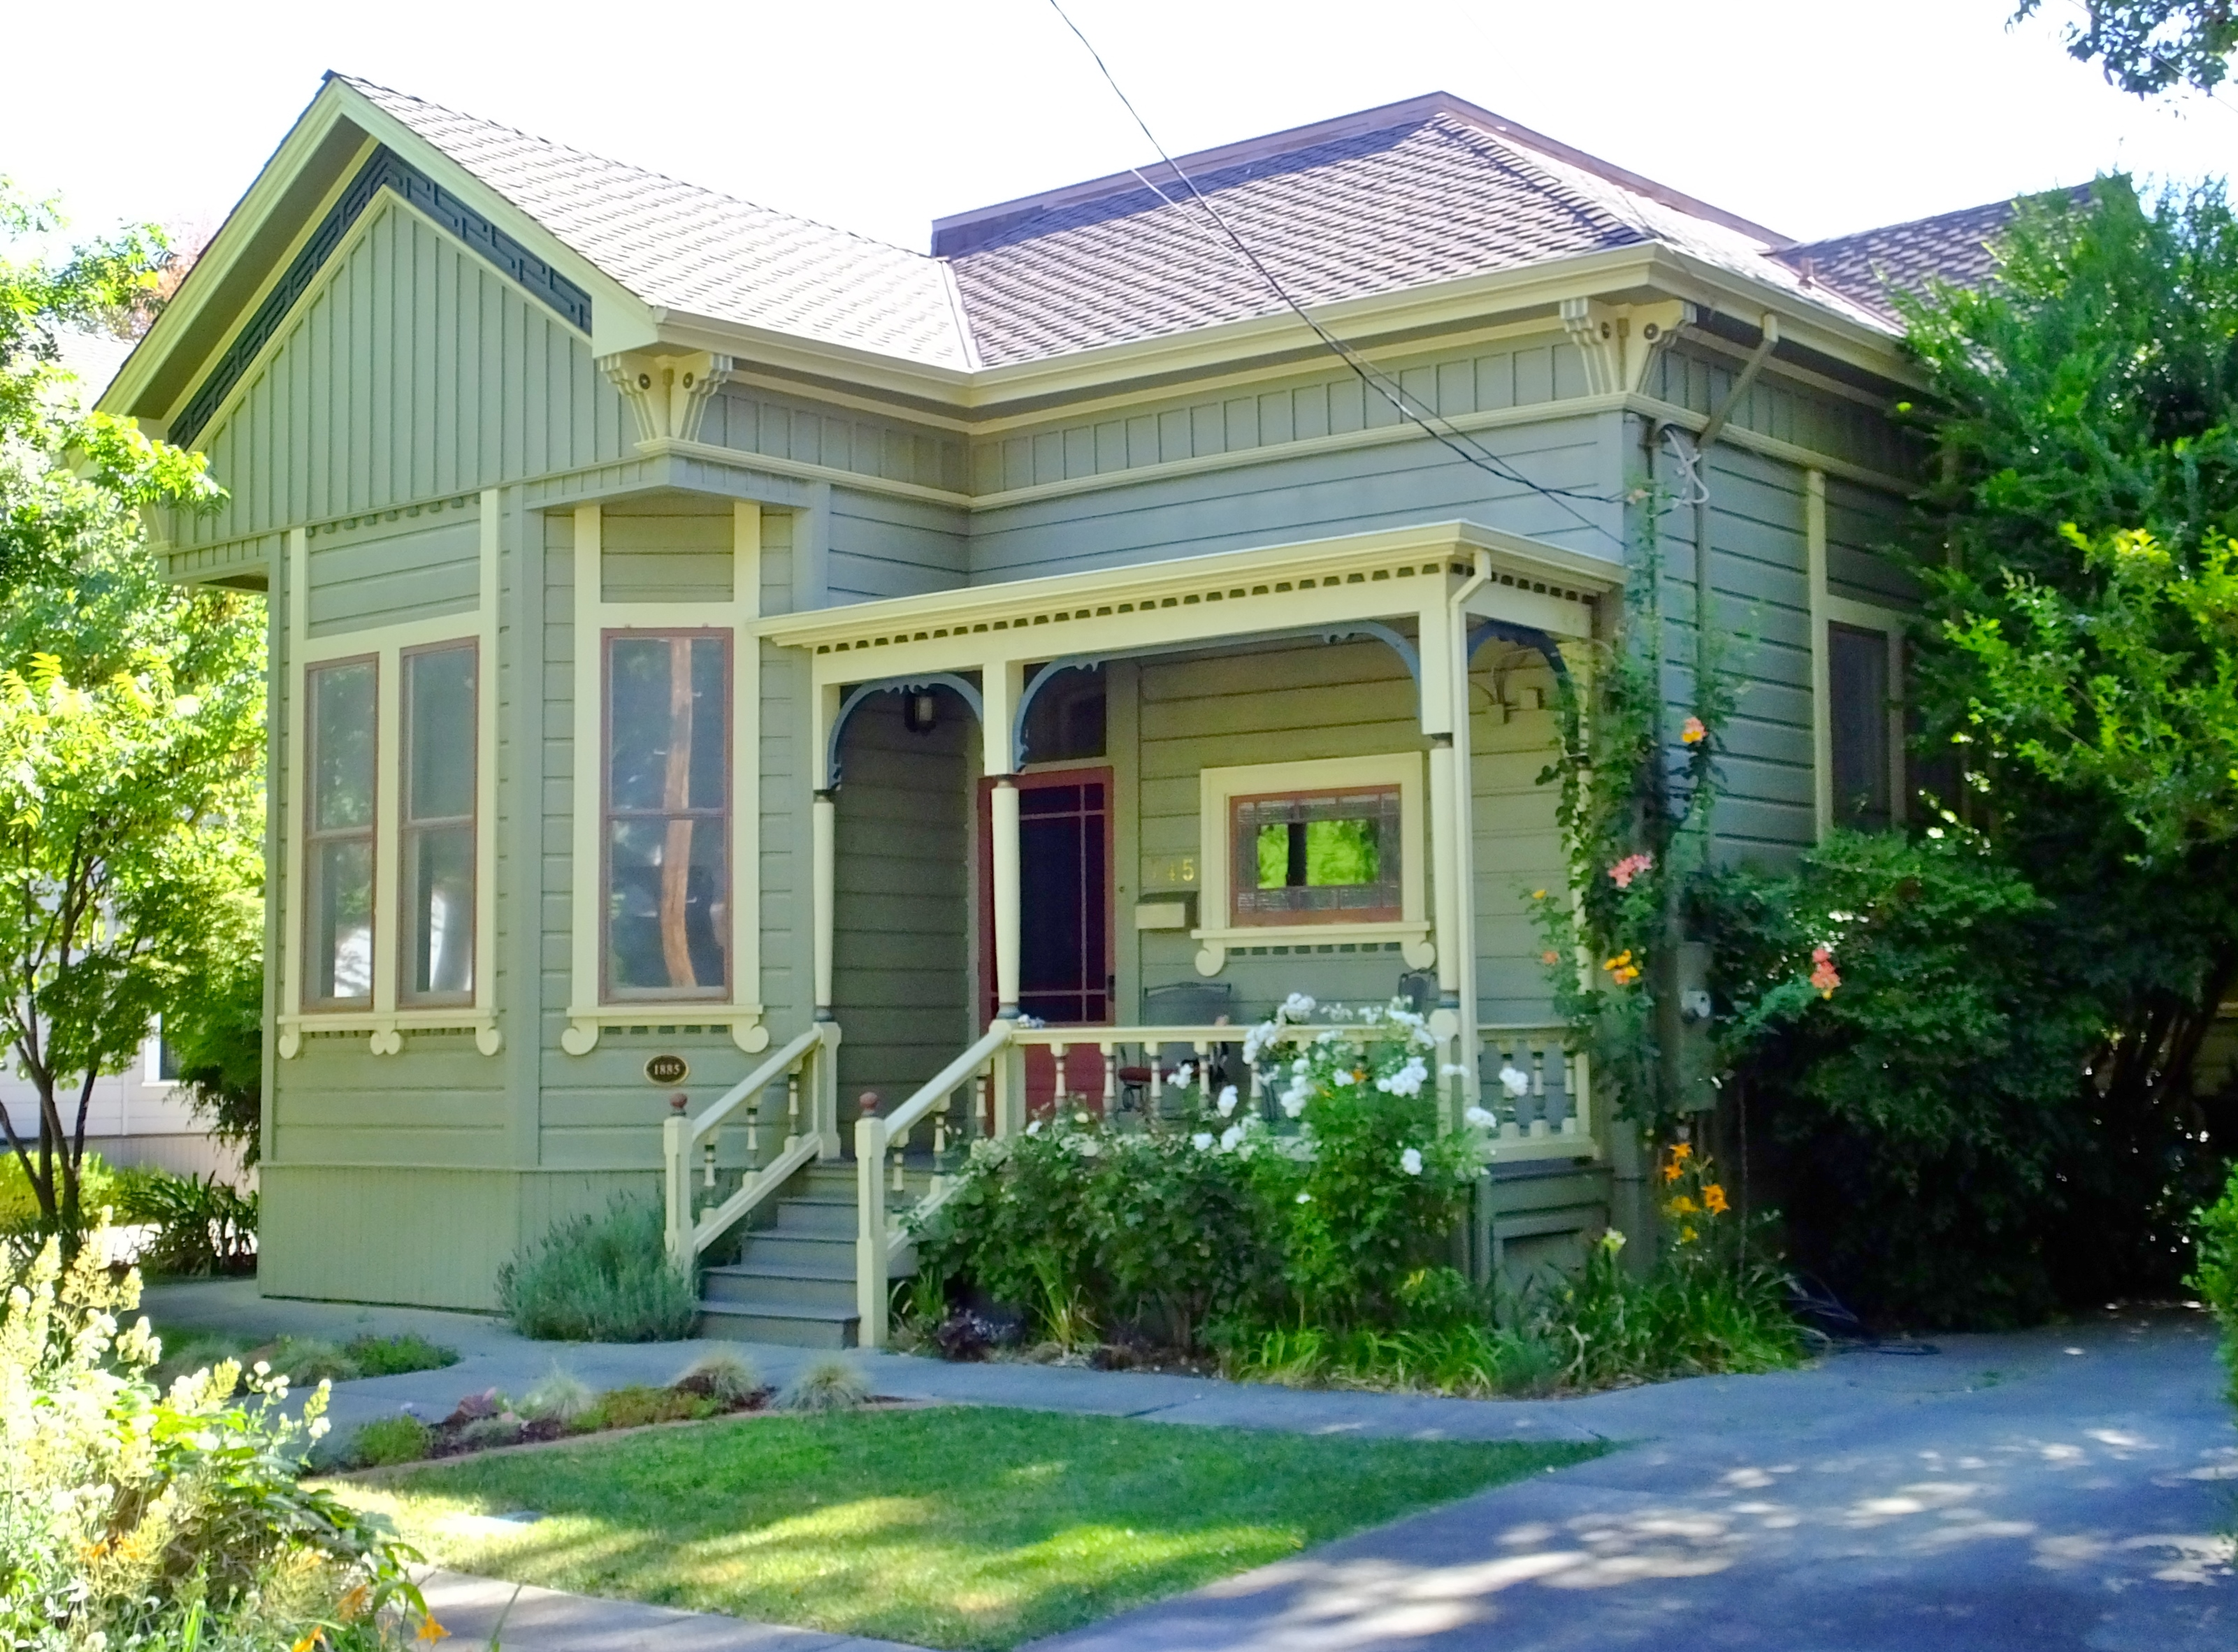 Open homes 2016 stroll through history for Wilkinson homes